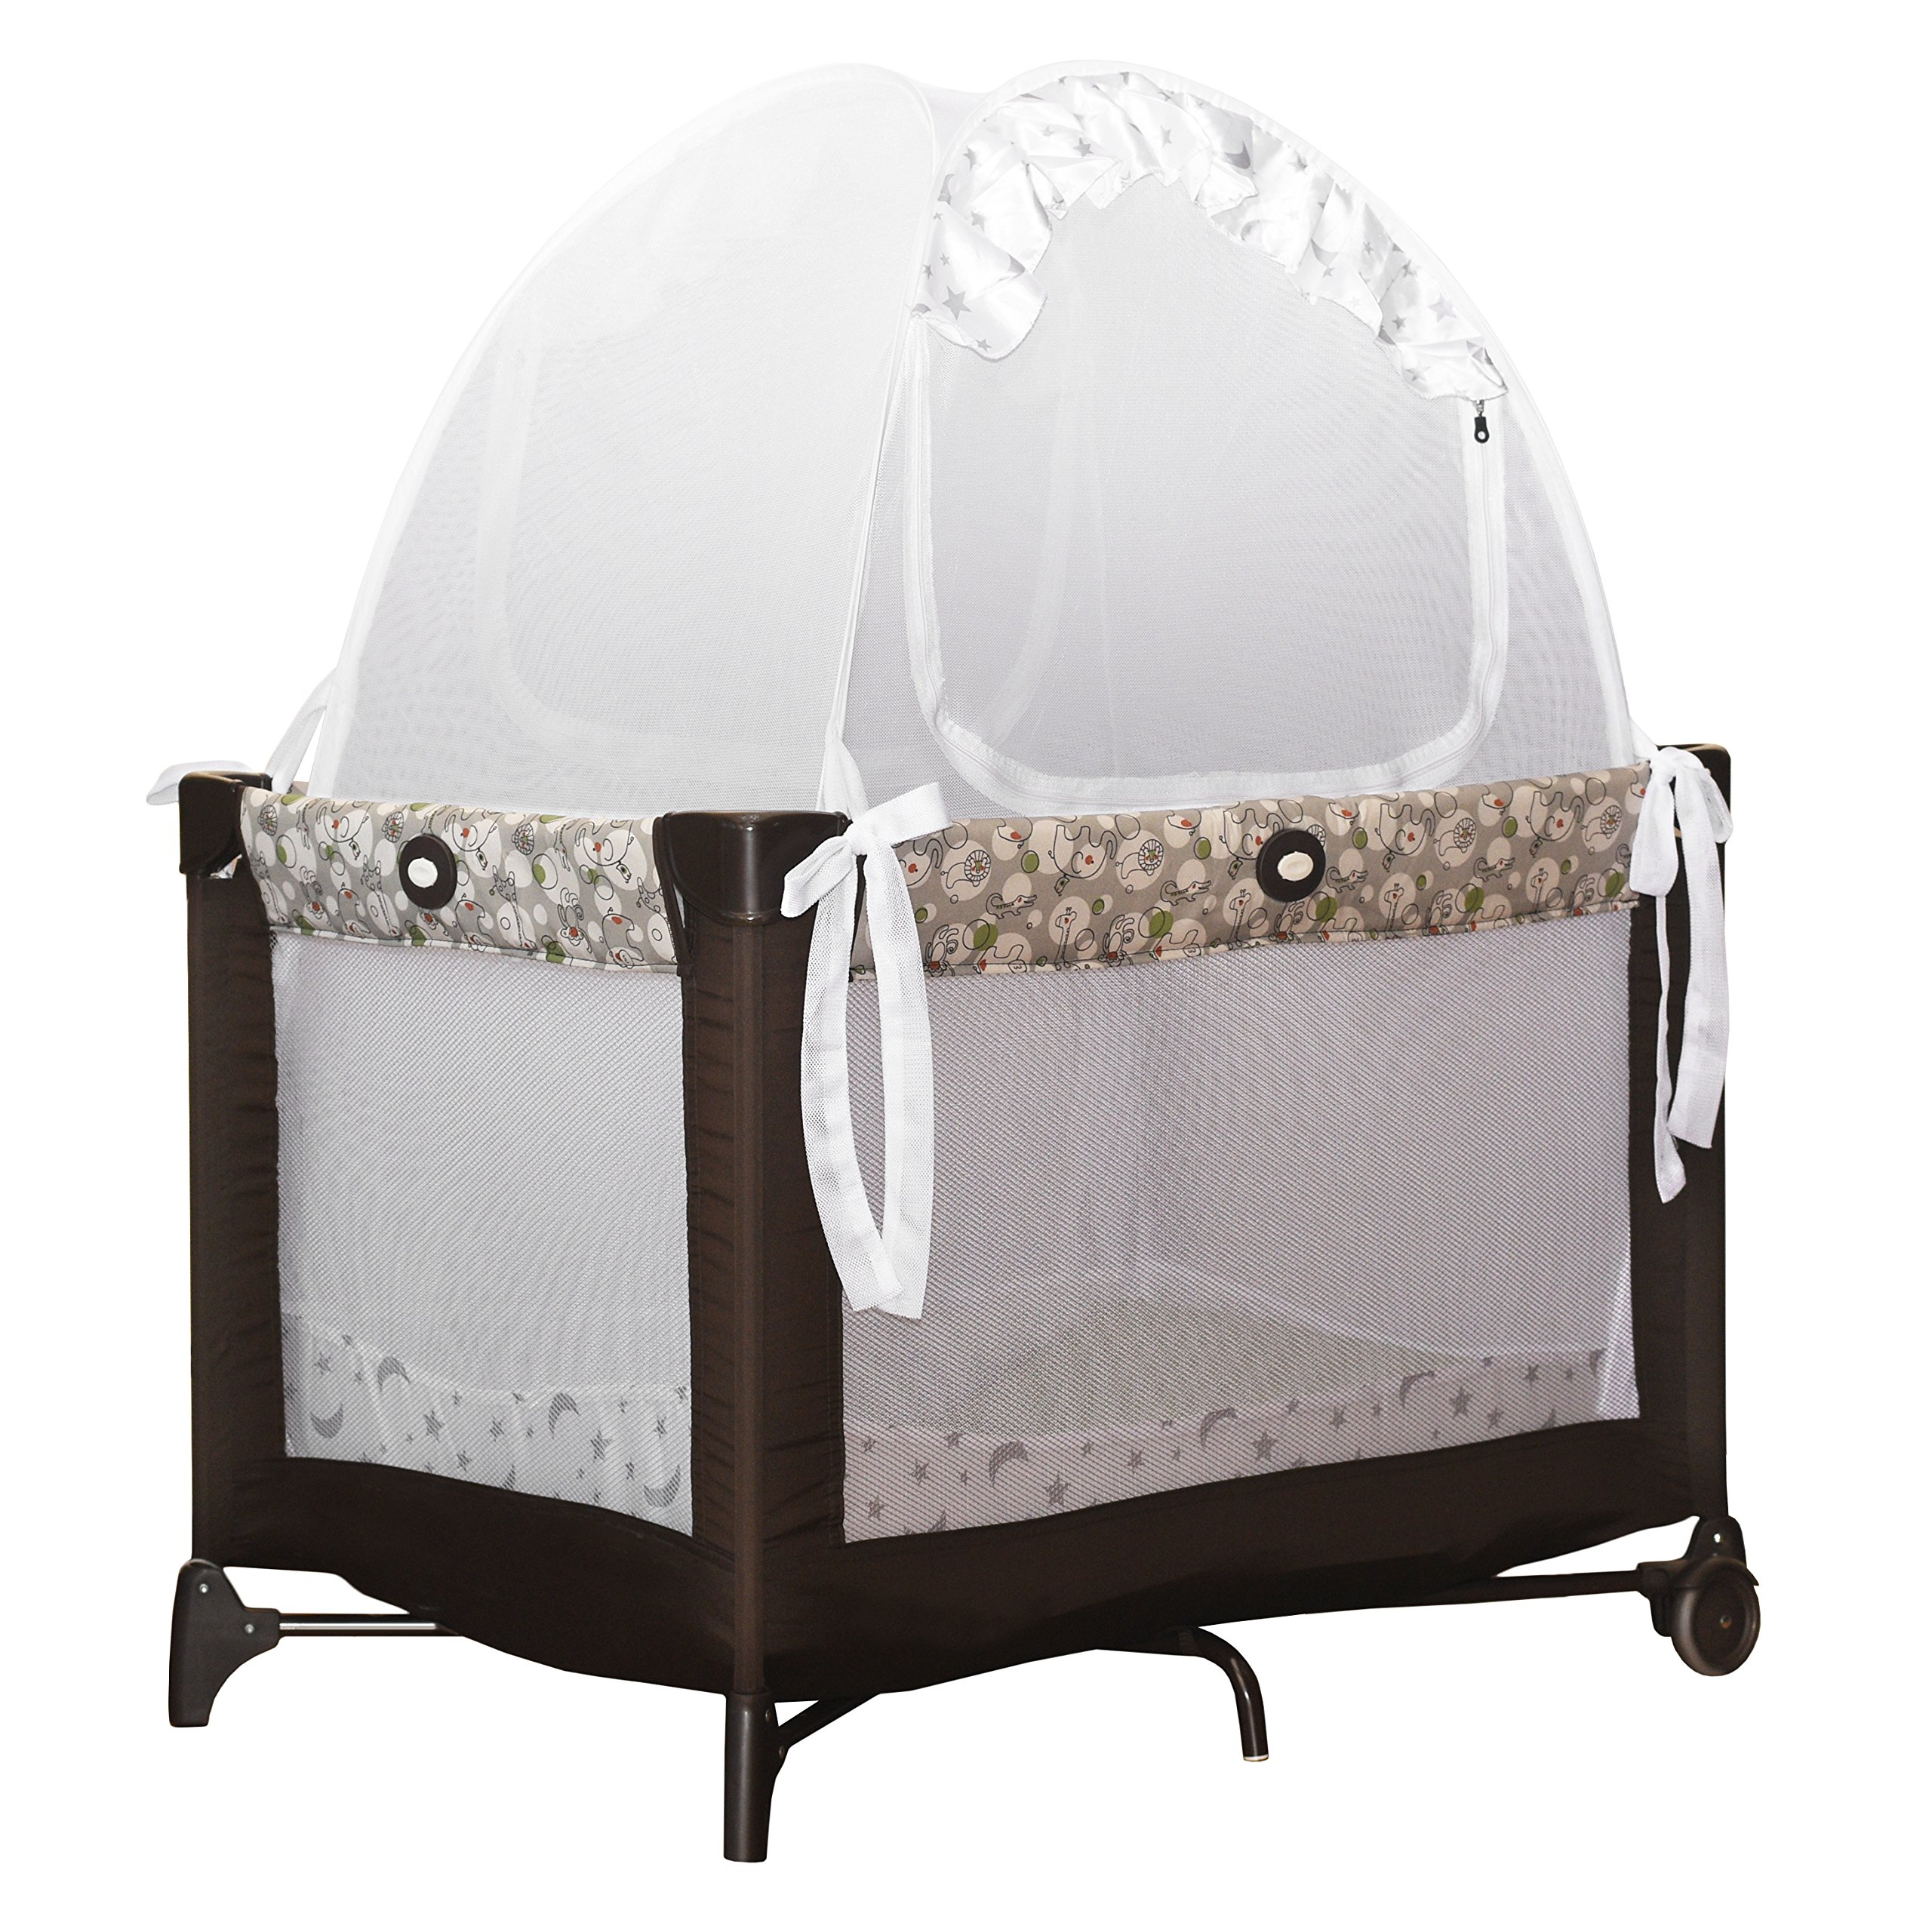 Baby Pack 'N Play Safety Pop up Tent: Premium Bed Canopy ...